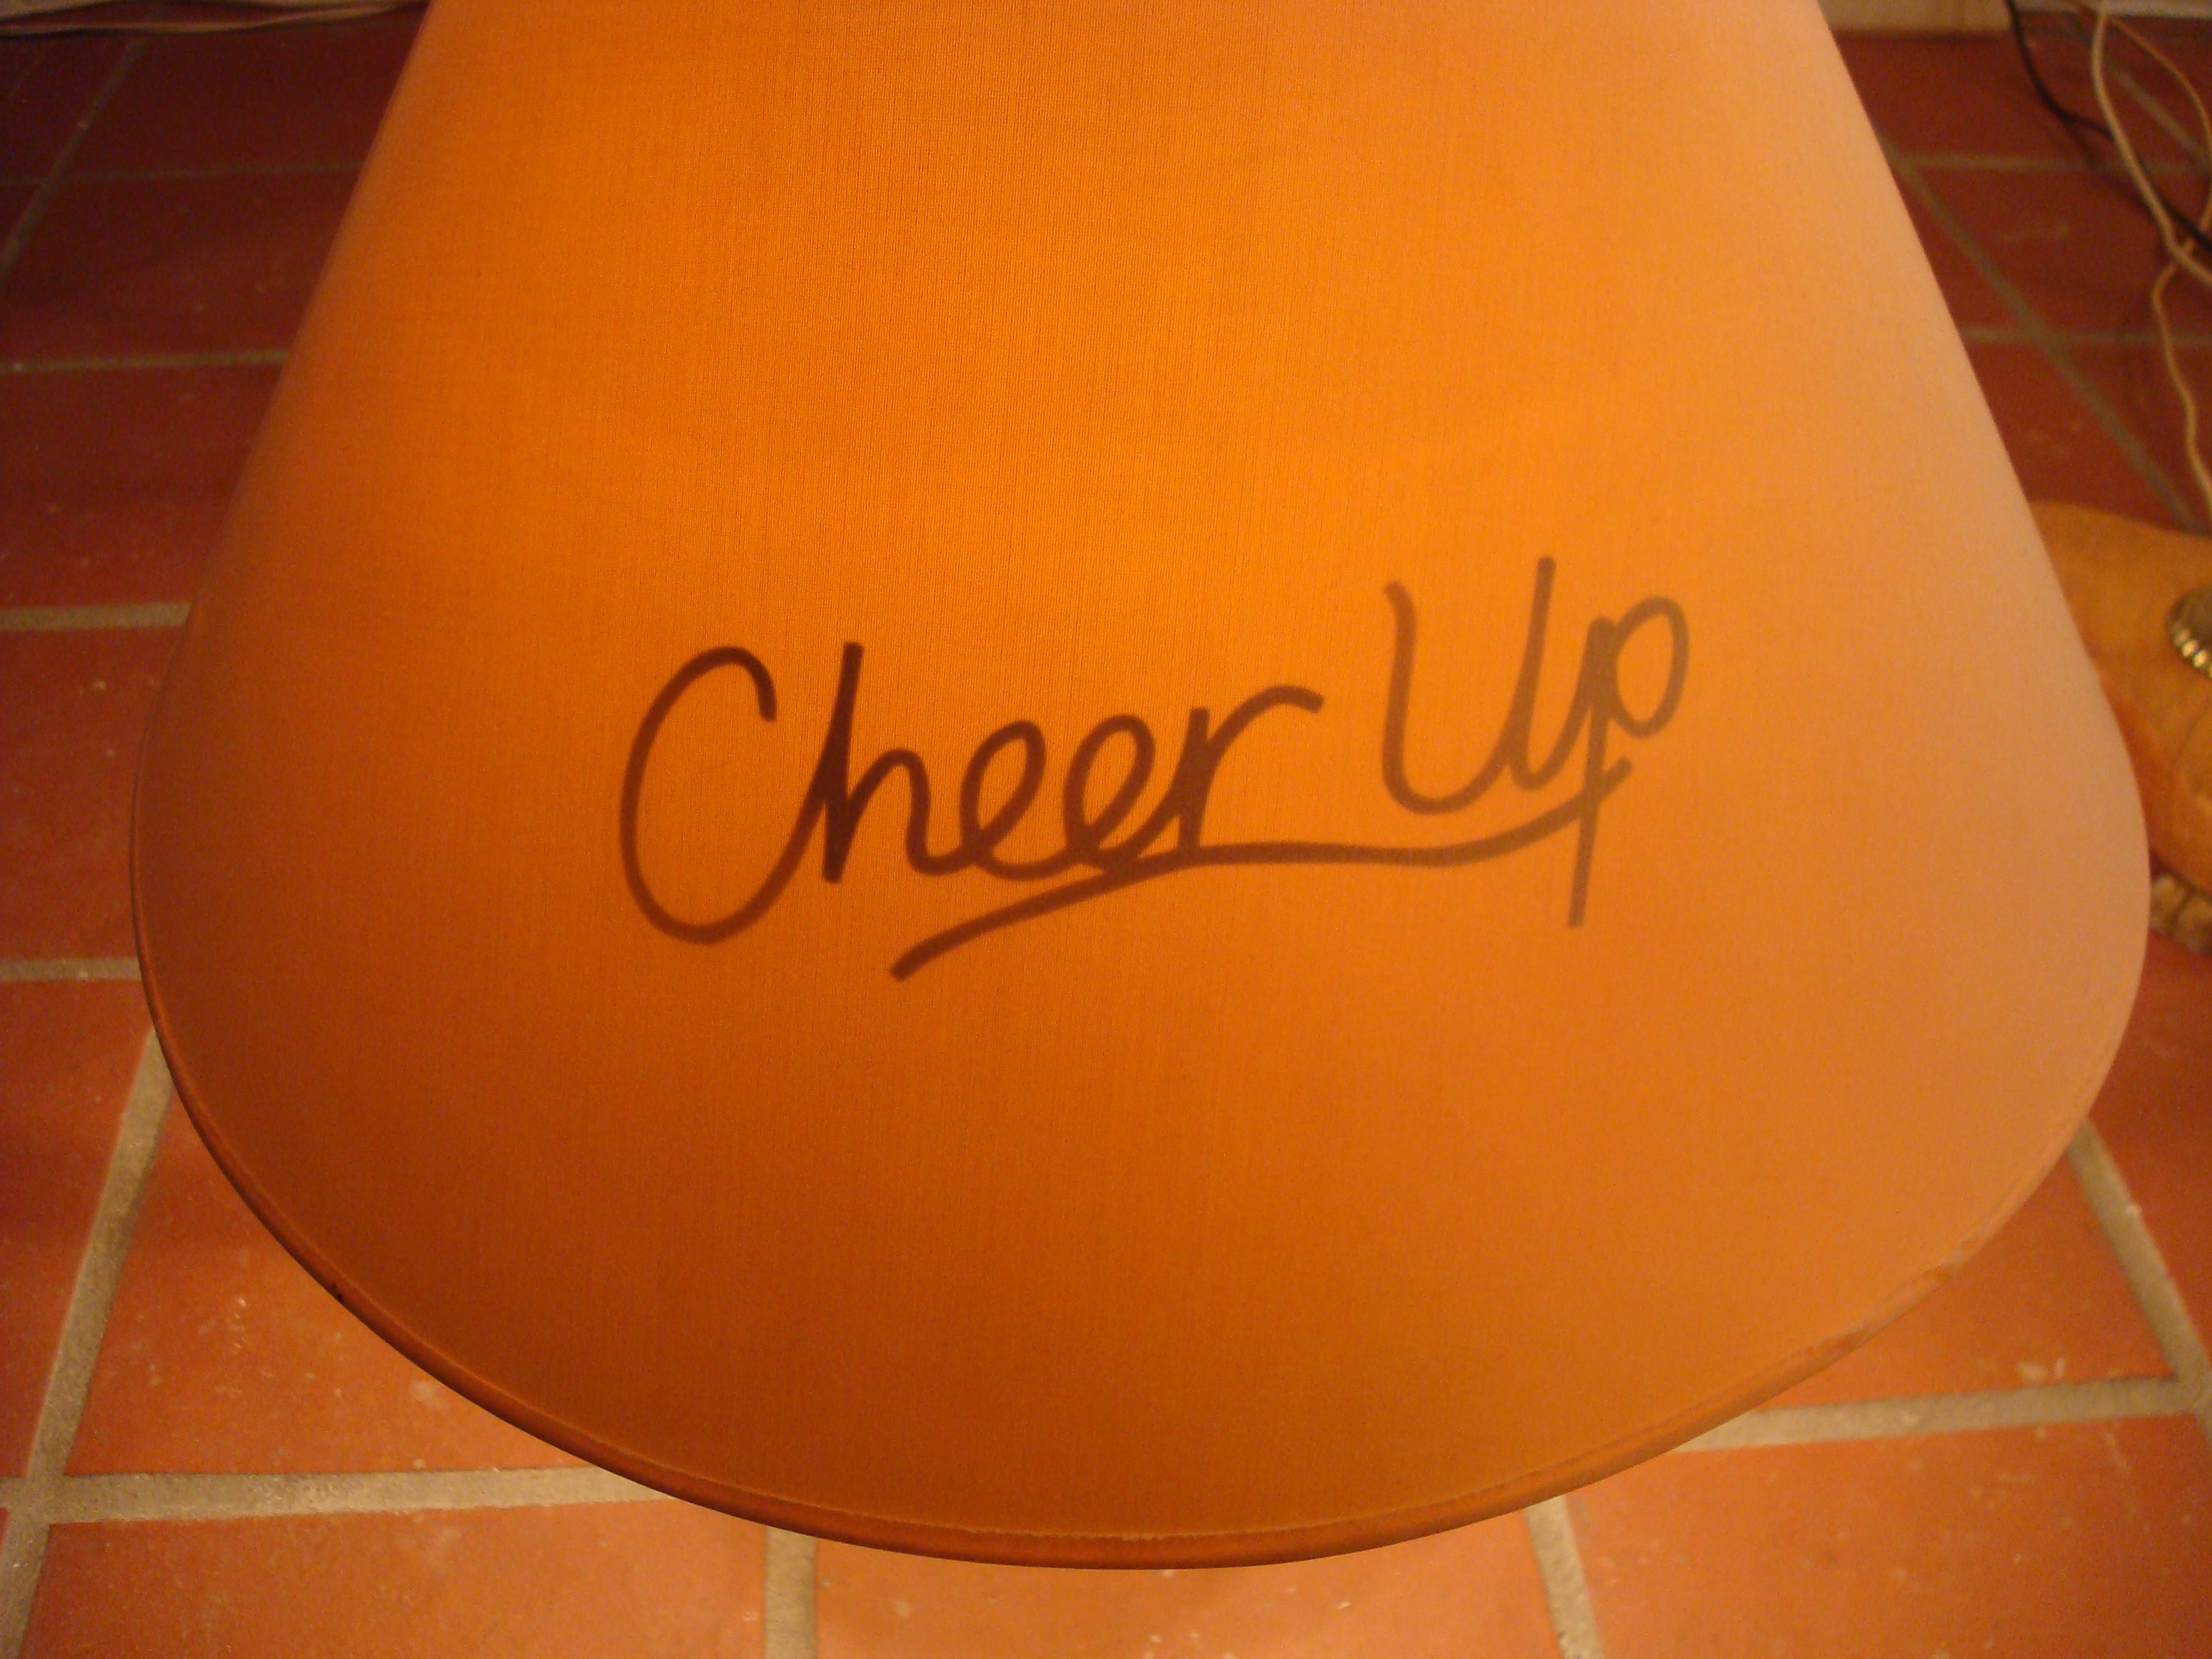 Cheer Up (detail)